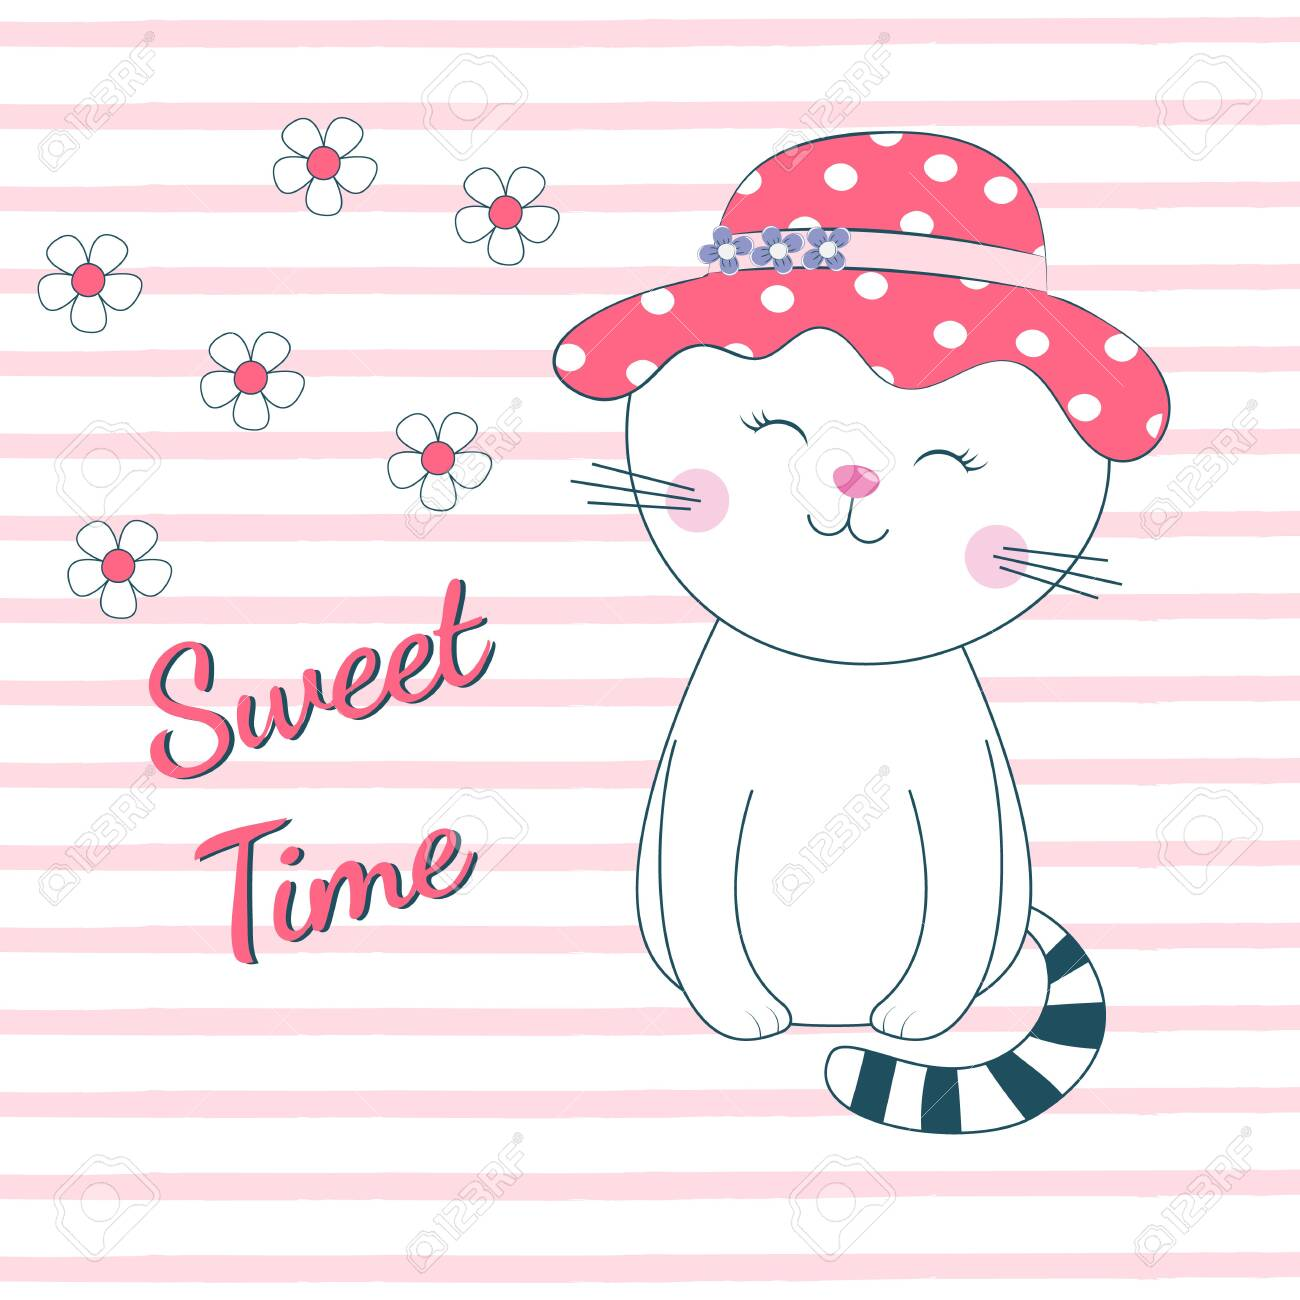 Beautiful sleeping cat girl with eyes closed dreams of love. The background is made in the style of pink stripes with white flowers. Drawing can be applied to children's t-shirts. - 123275082